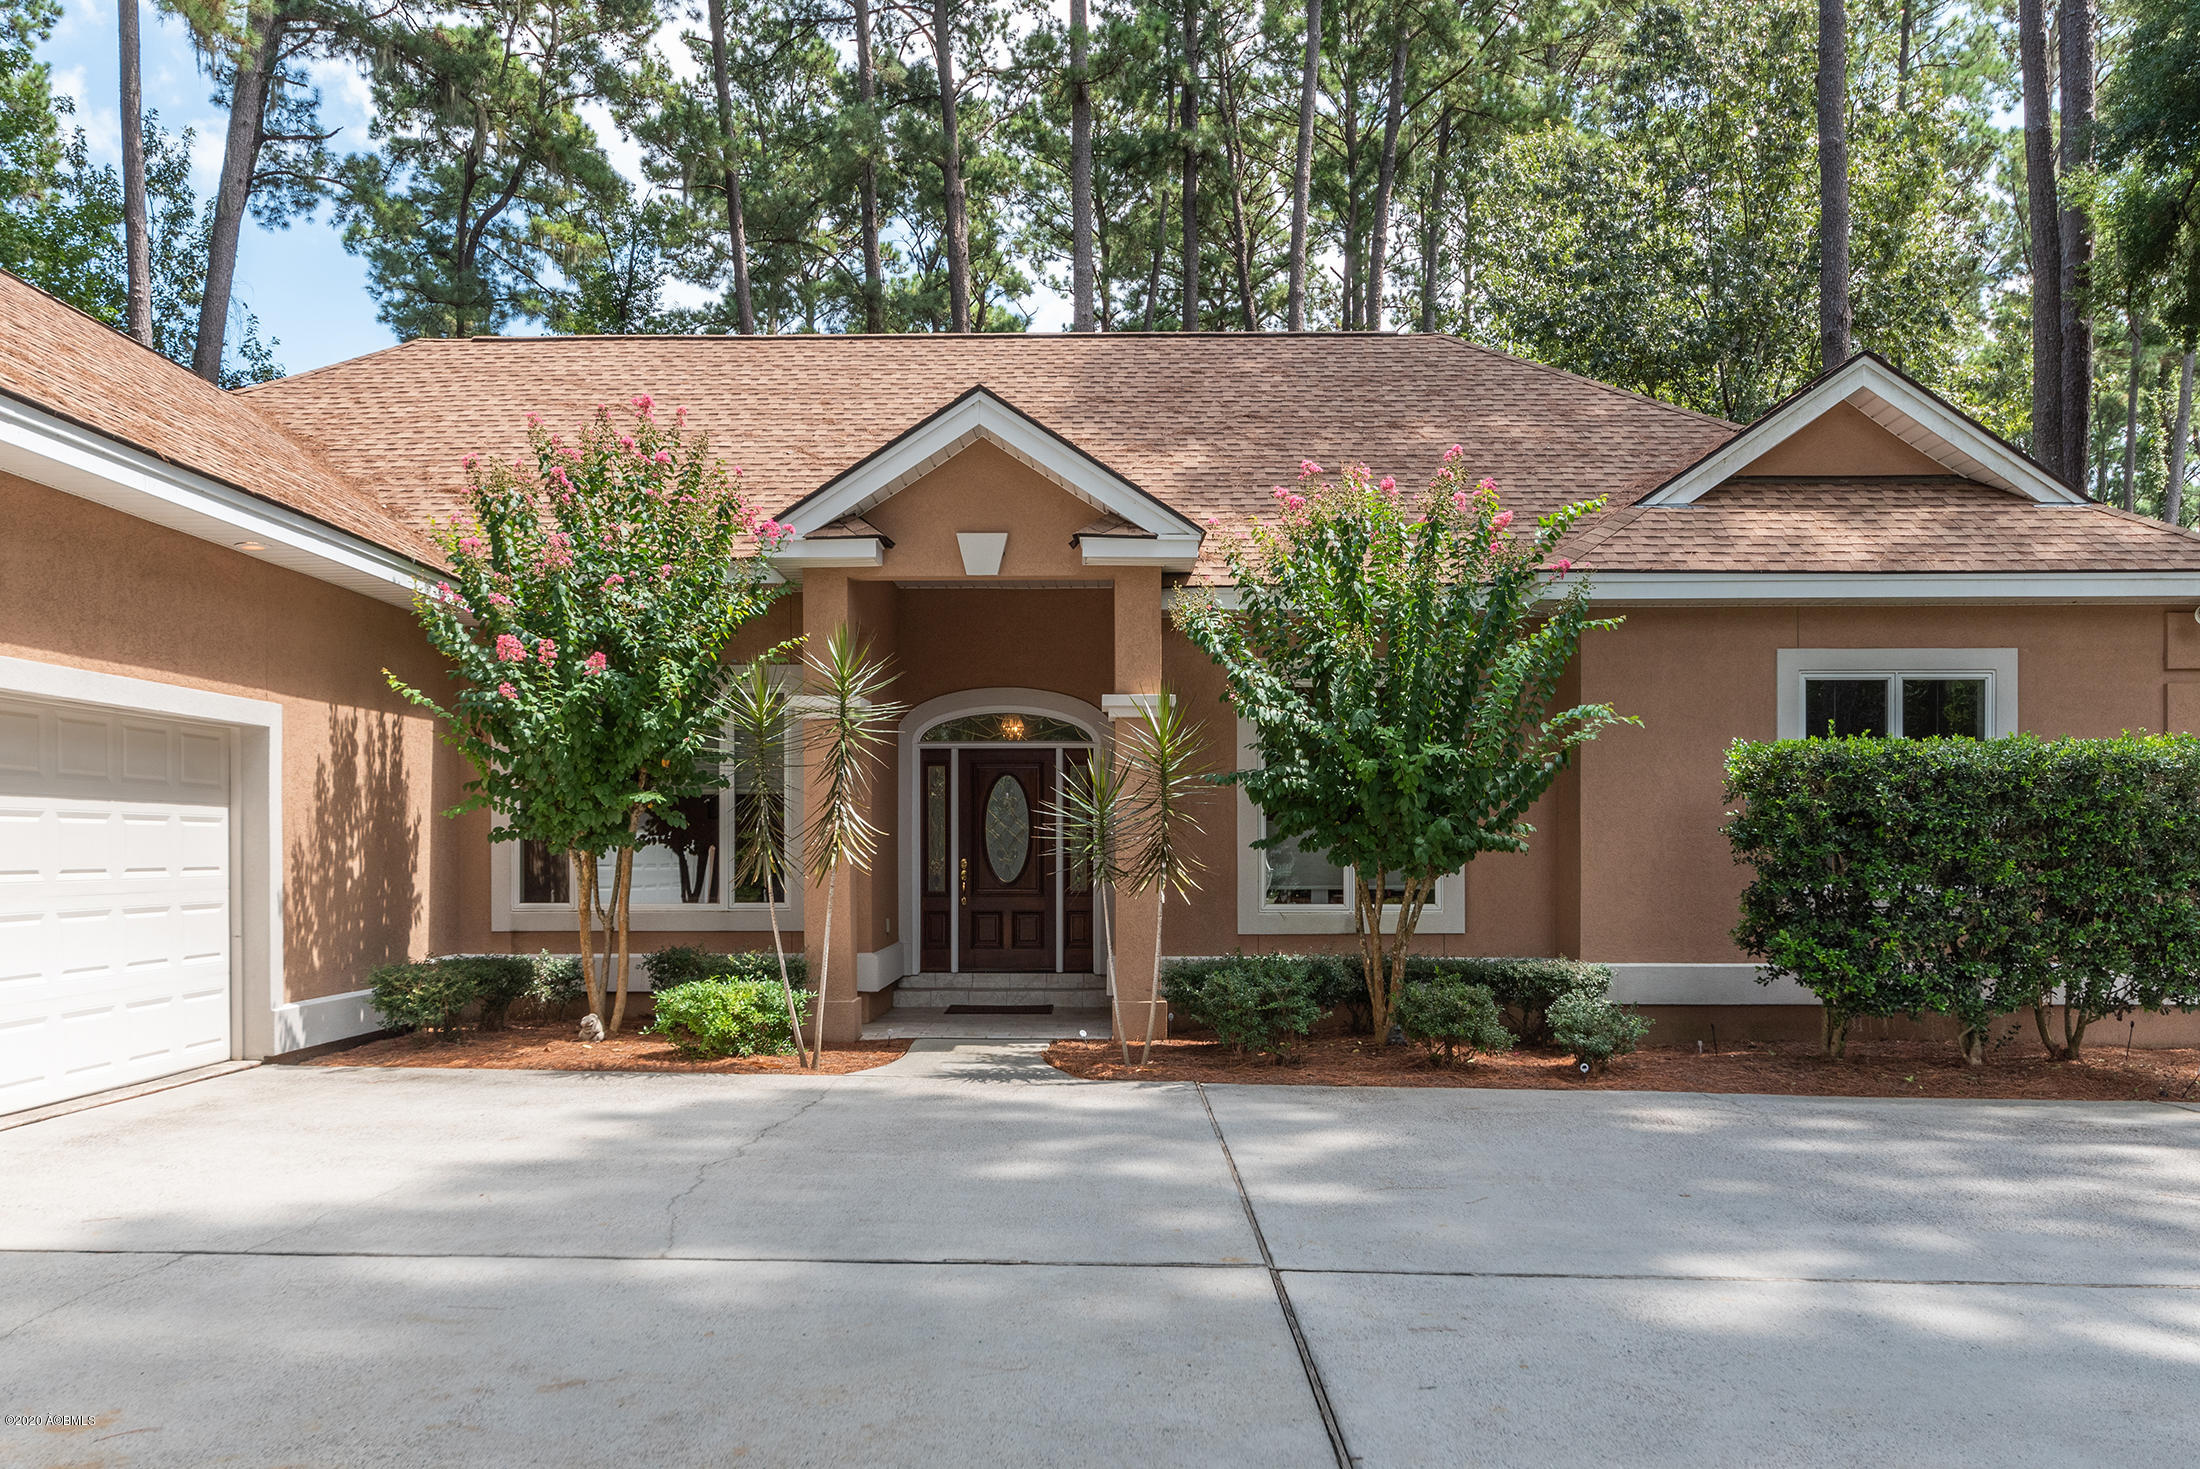 Photo of 53 Winding Oak Drive, Okatie, SC 29909